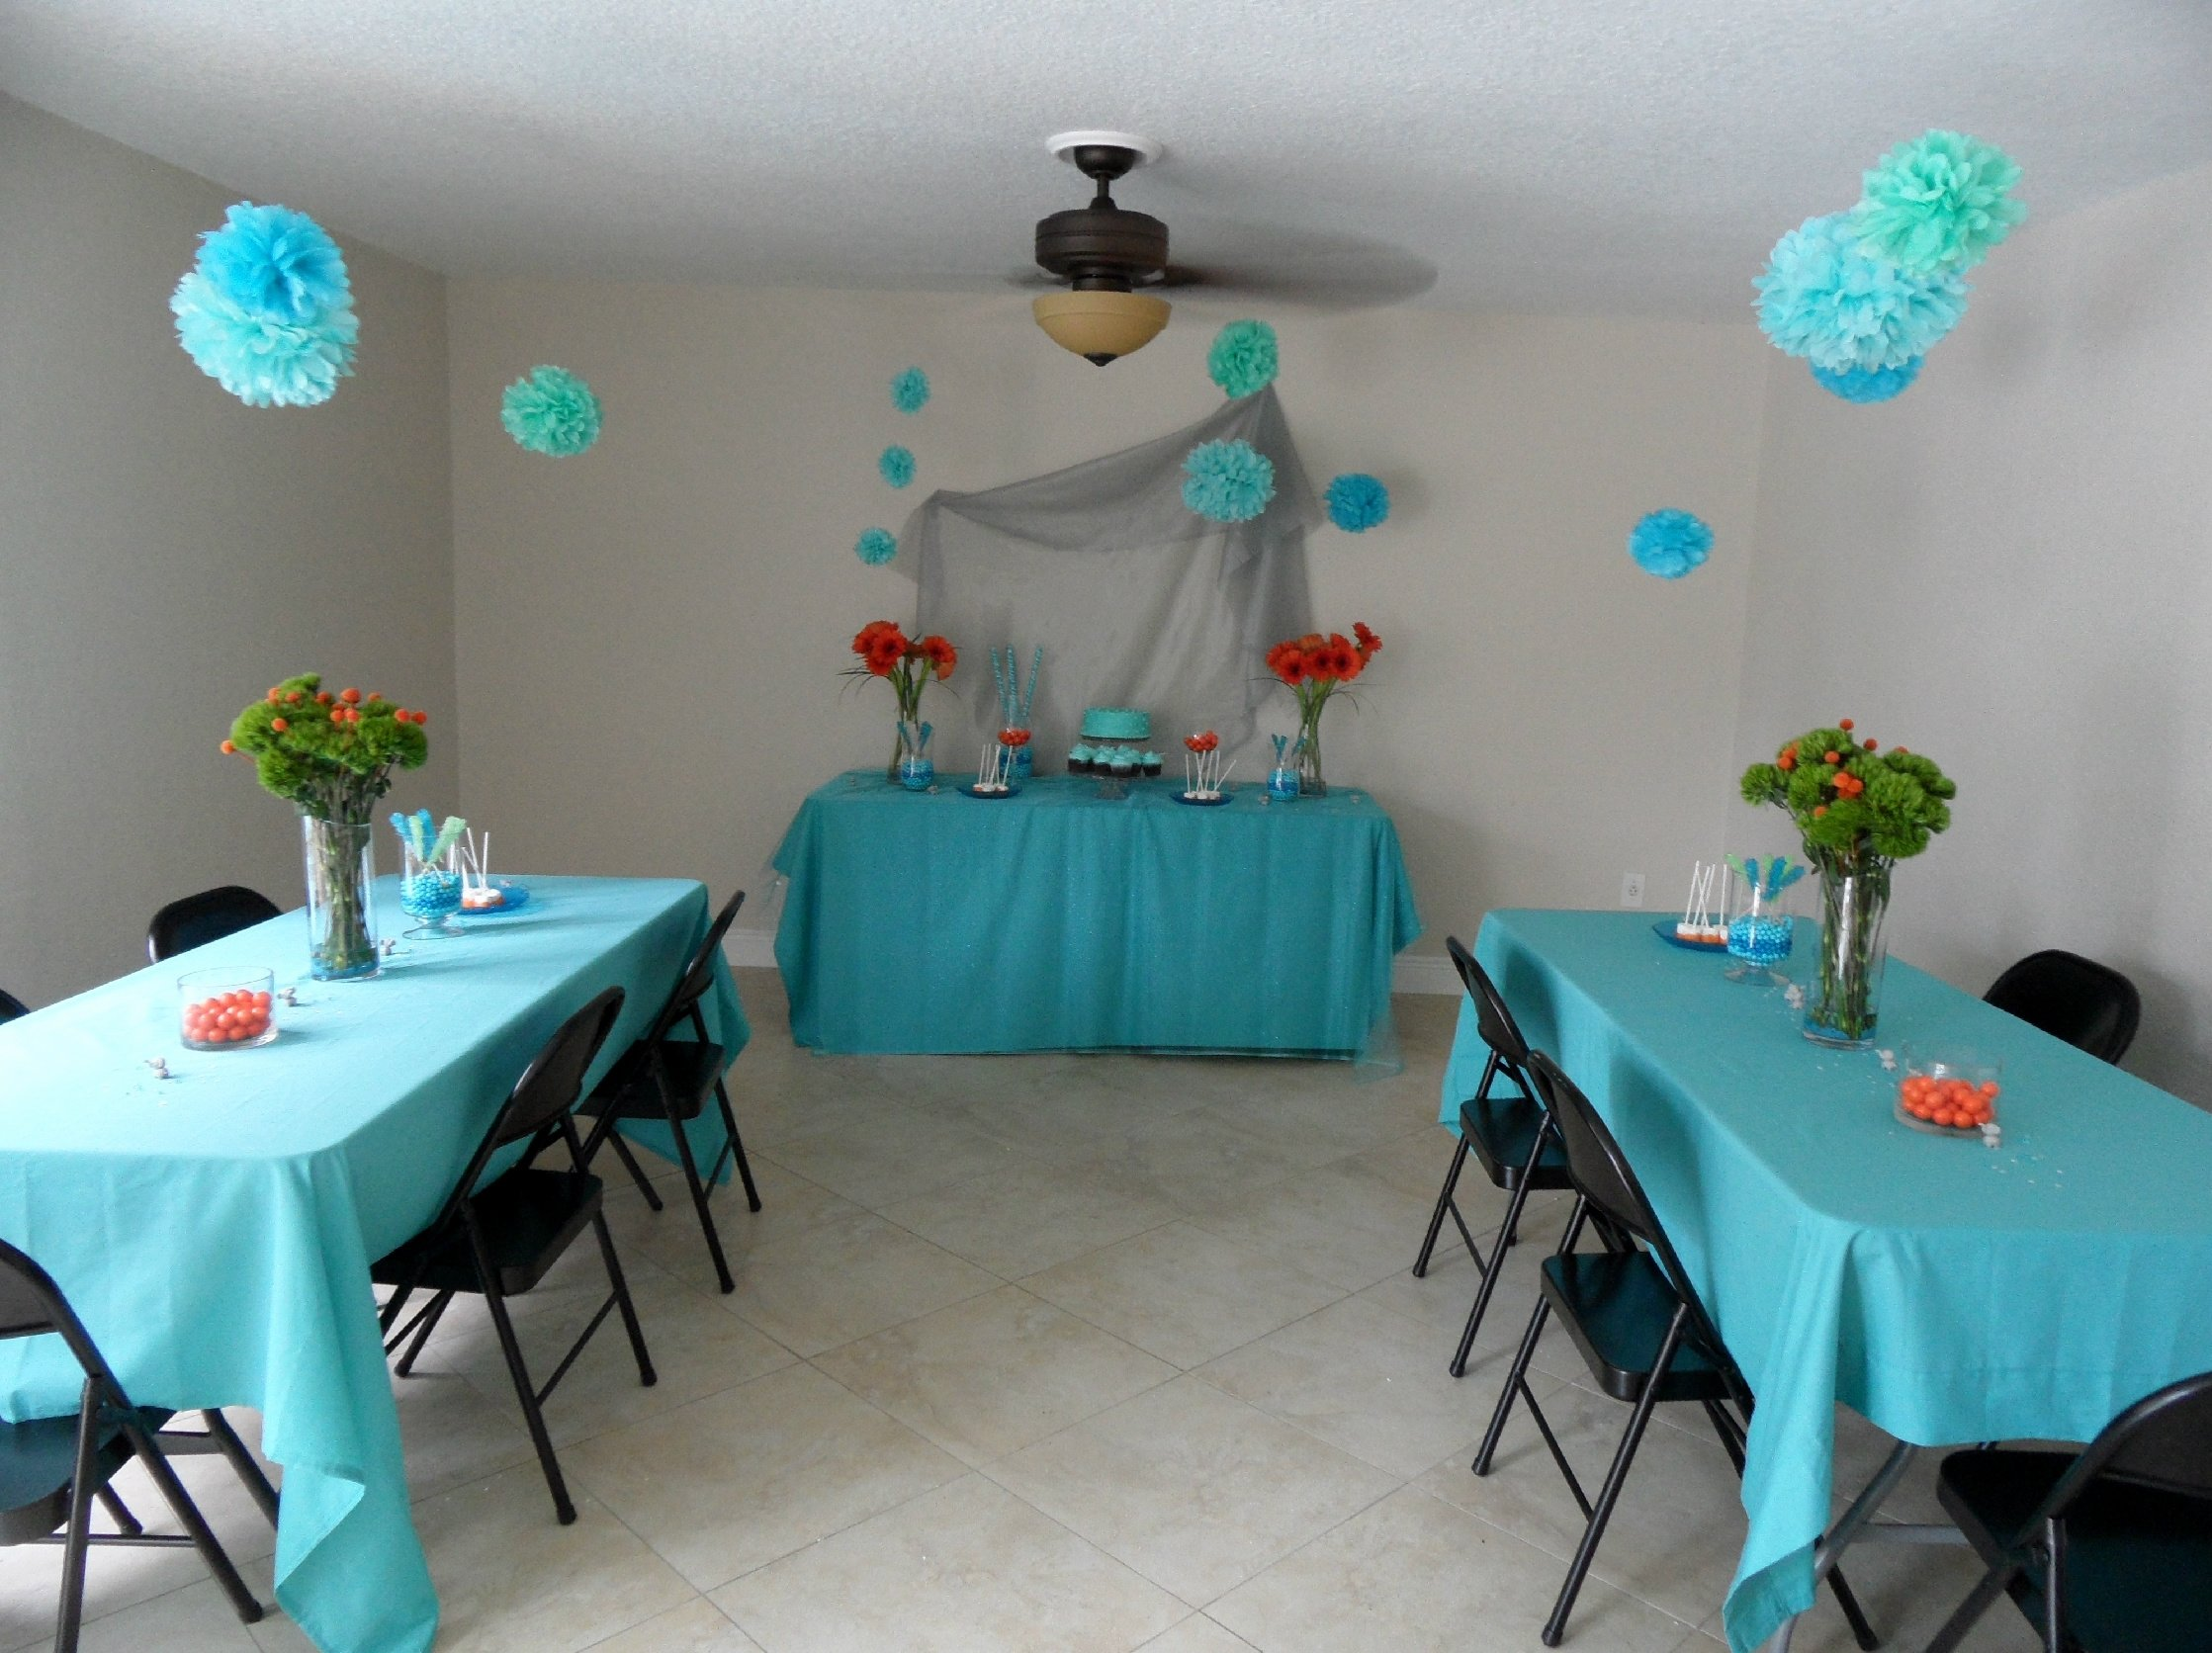 10 Amazing Baby Shower Ideas For Boy baby shower decoration ideas fory blue zebra decorations themes twin 2020